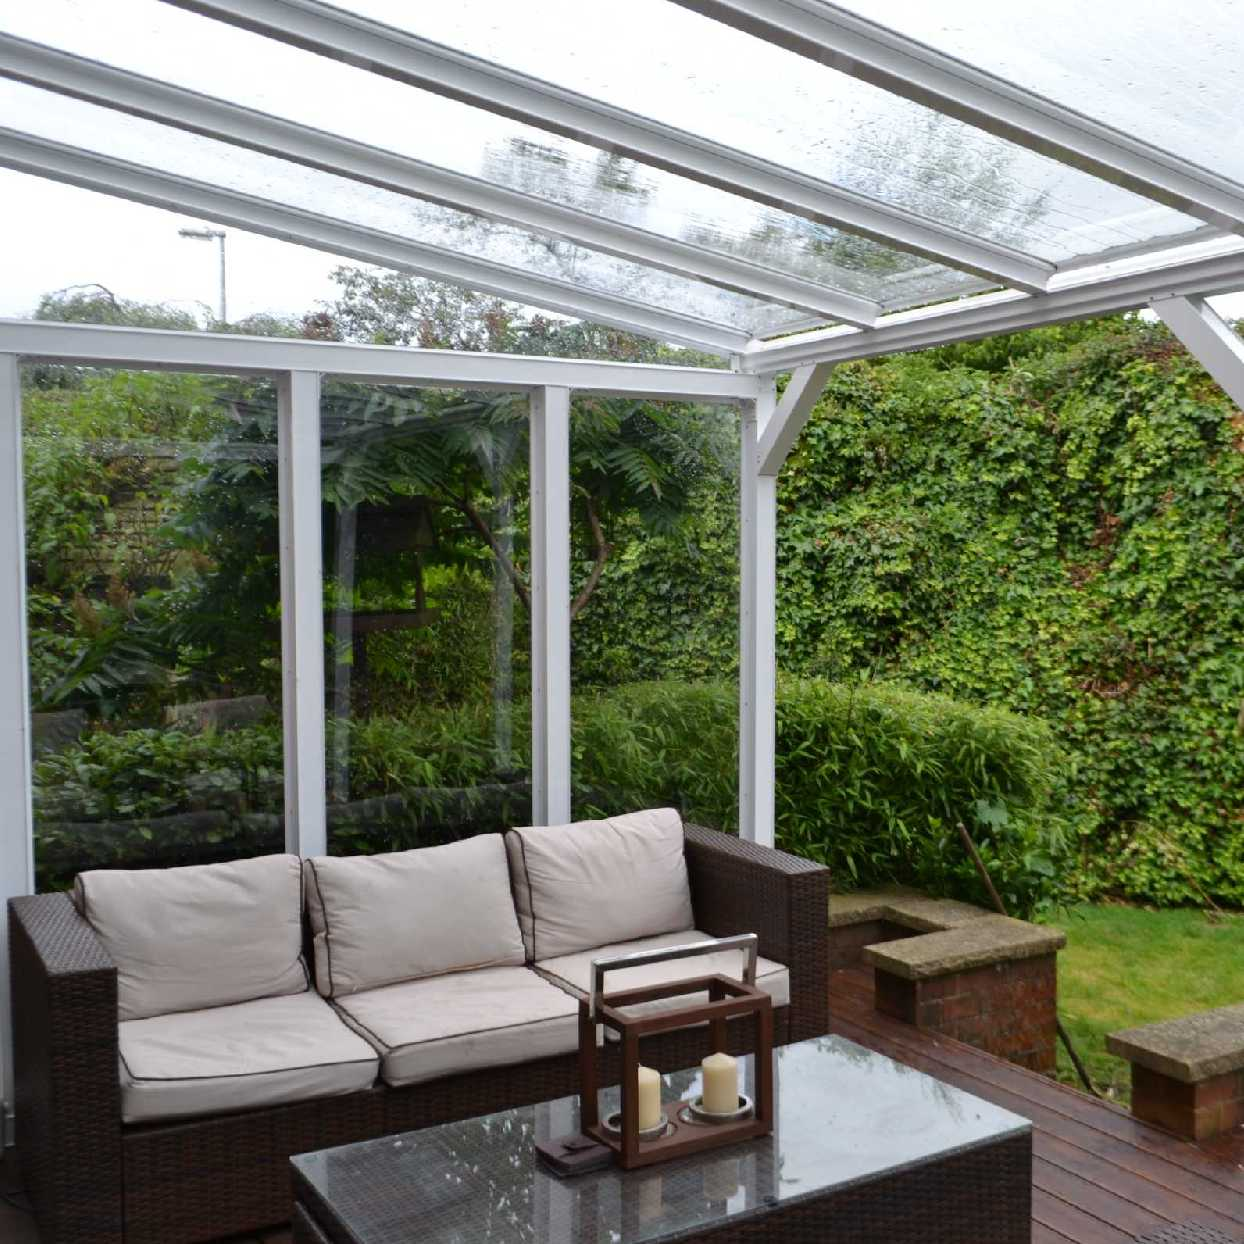 Omega Smart White Lean-To Canopy with 6mm Glass Clear Plate Polycarbonate Glazing - 7.4m (W) x 4.0m (P), (4) Supporting Posts